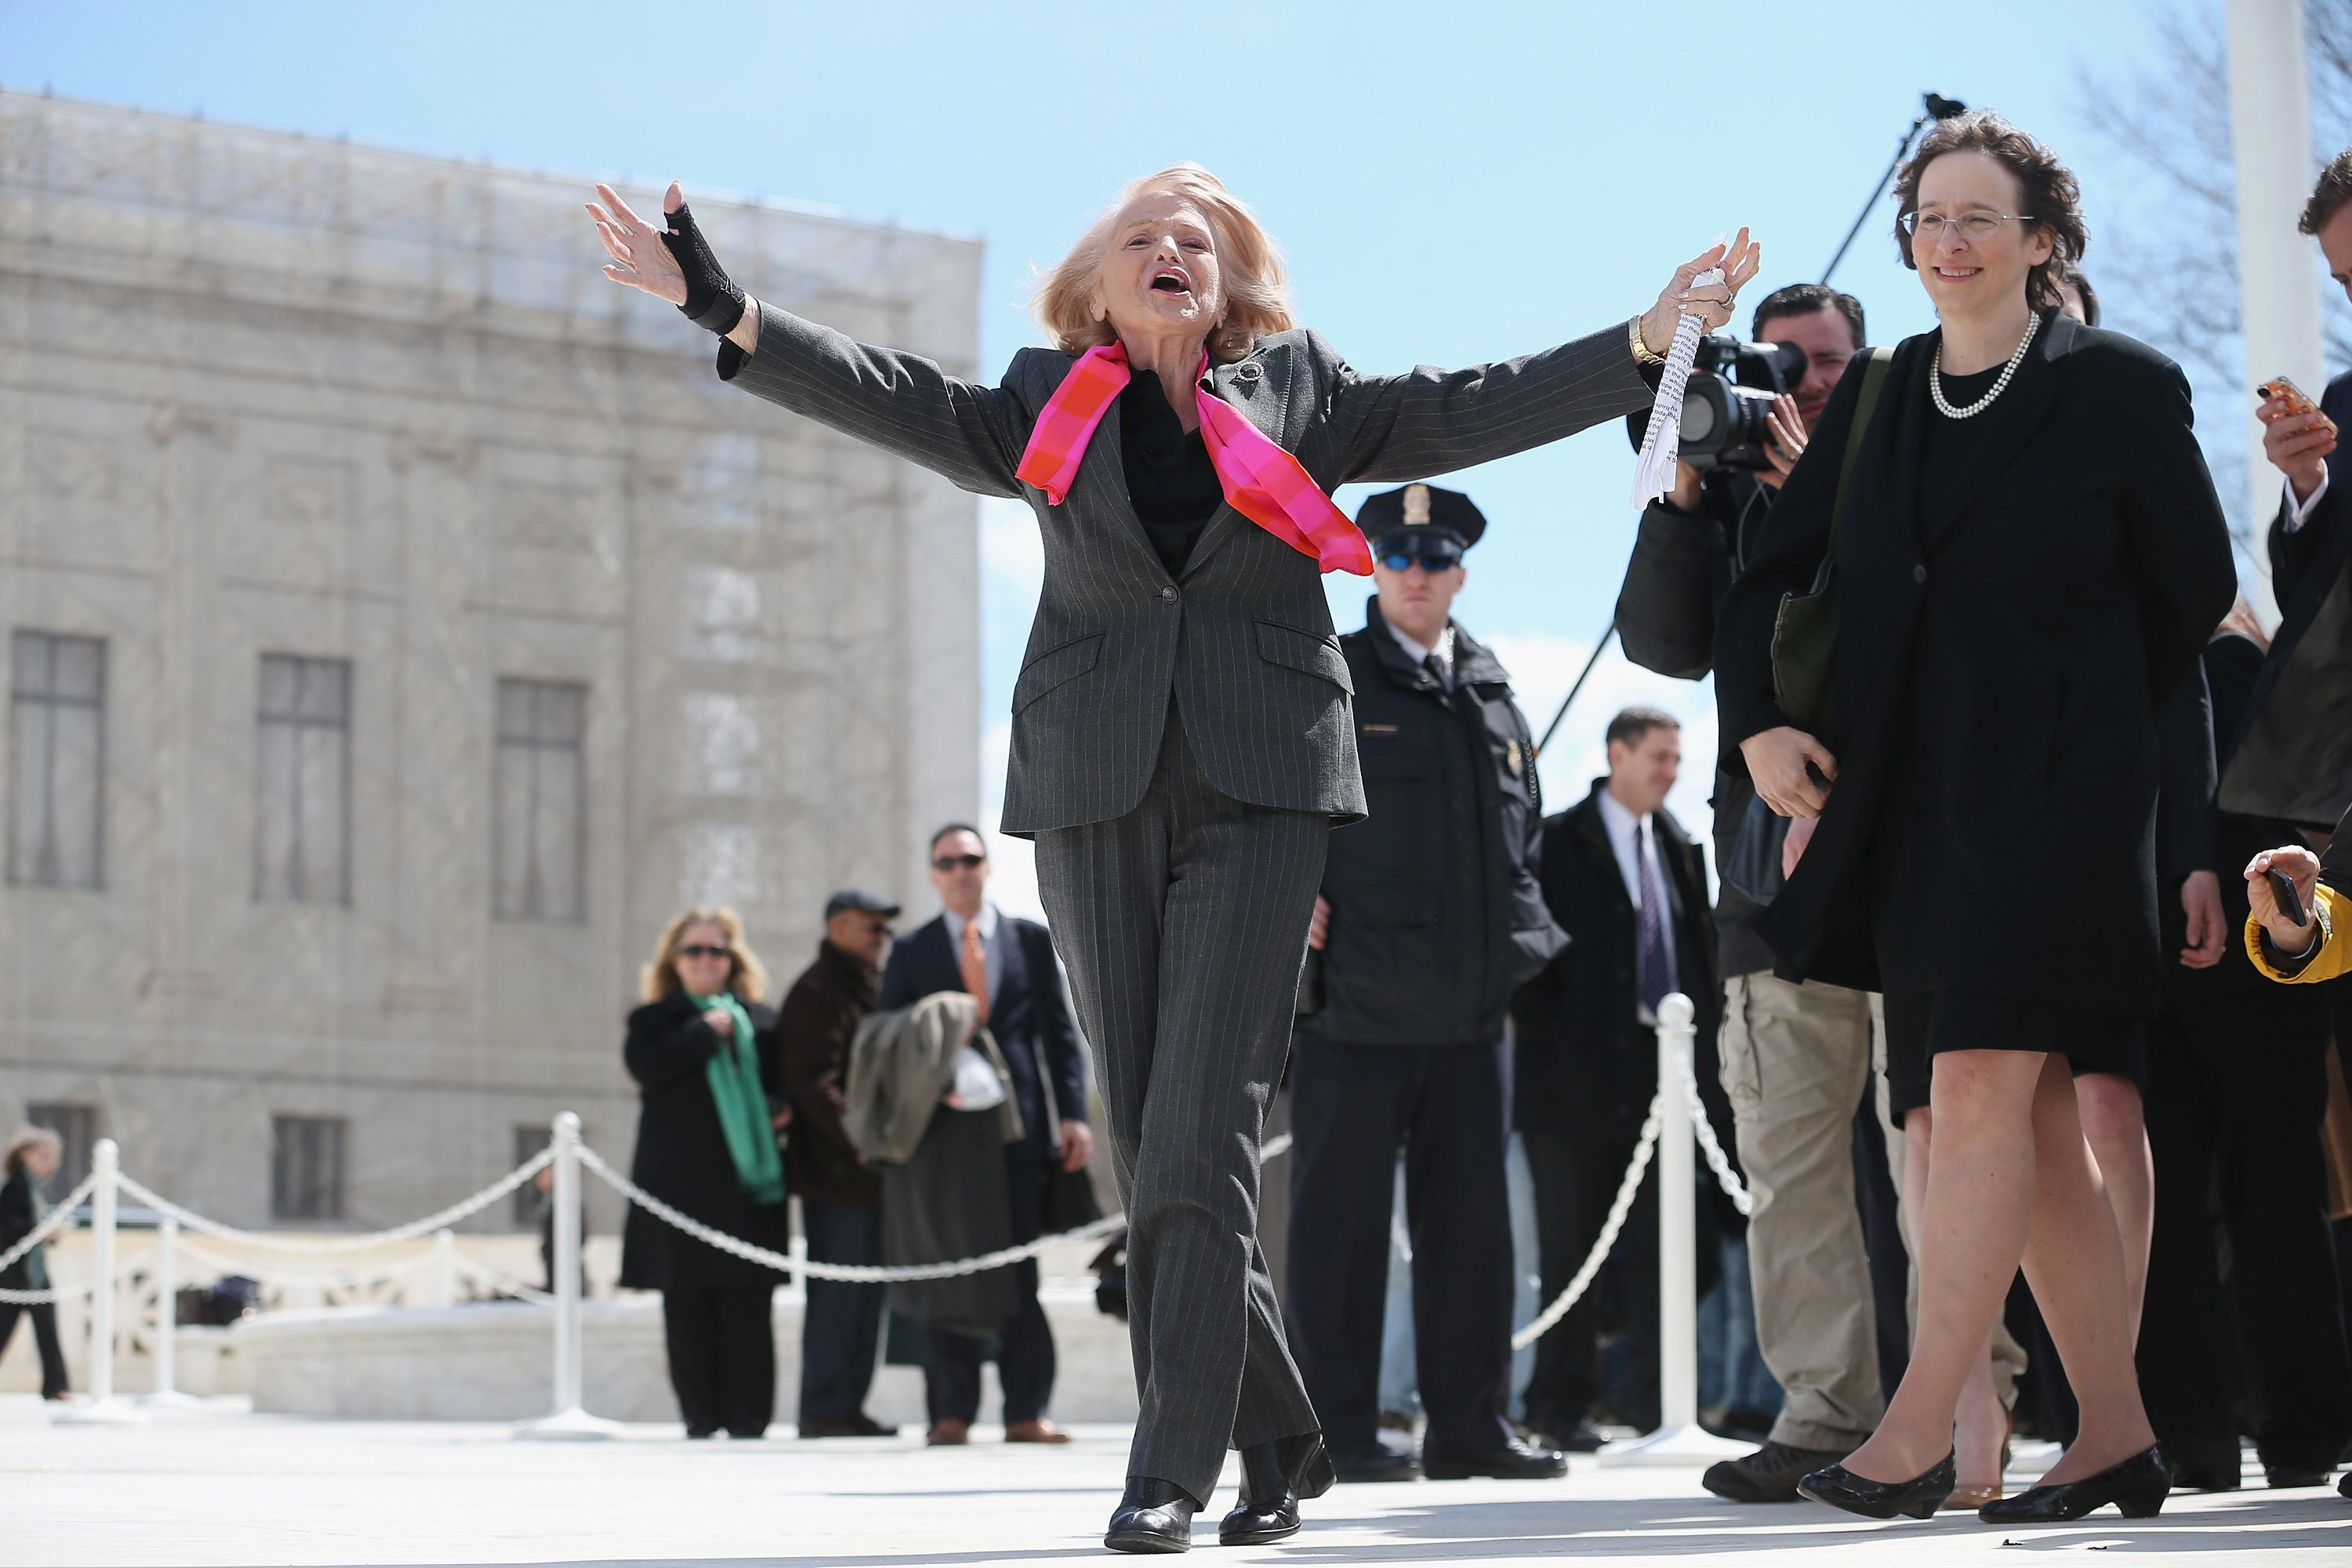 WASHINGTON, DC - MARCH 27:  Edith Windsor, 83, acknowledges her supporters as she leaves the Supreme Court March 27, 2013 in Washington, DC. The Supreme Court heard oral arguments in the case 'Edith Schlain Windsor, in Her Capacity as Executor of the Estate of Thea Clara Spyer, Petitioner v. United States,' which challenges the constitutionality of the Defense of Marriage Act (DOMA), the second case about same-sex marriage this week.  (Photo by Chip Somodevilla/Getty Images)